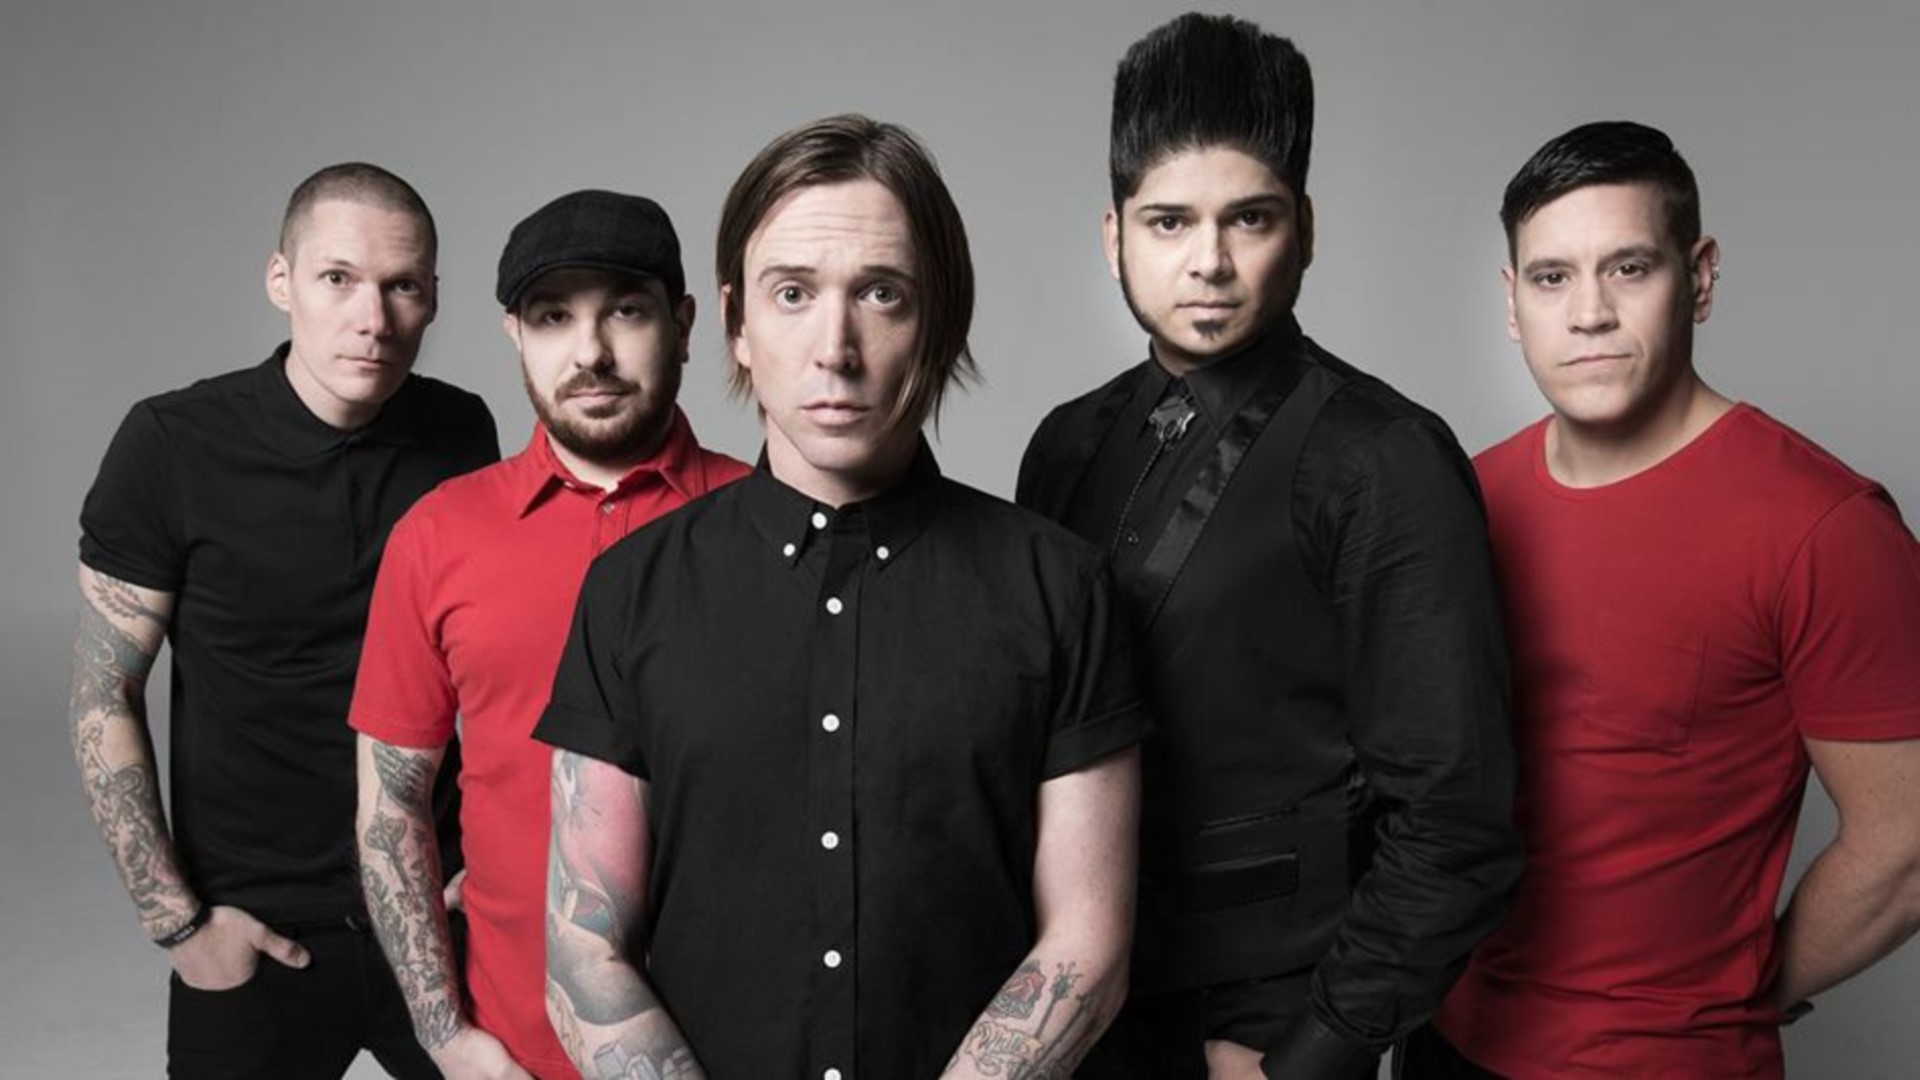 Billy Talent Play The Limelight 22 Aug 18 Happy Metal Geek